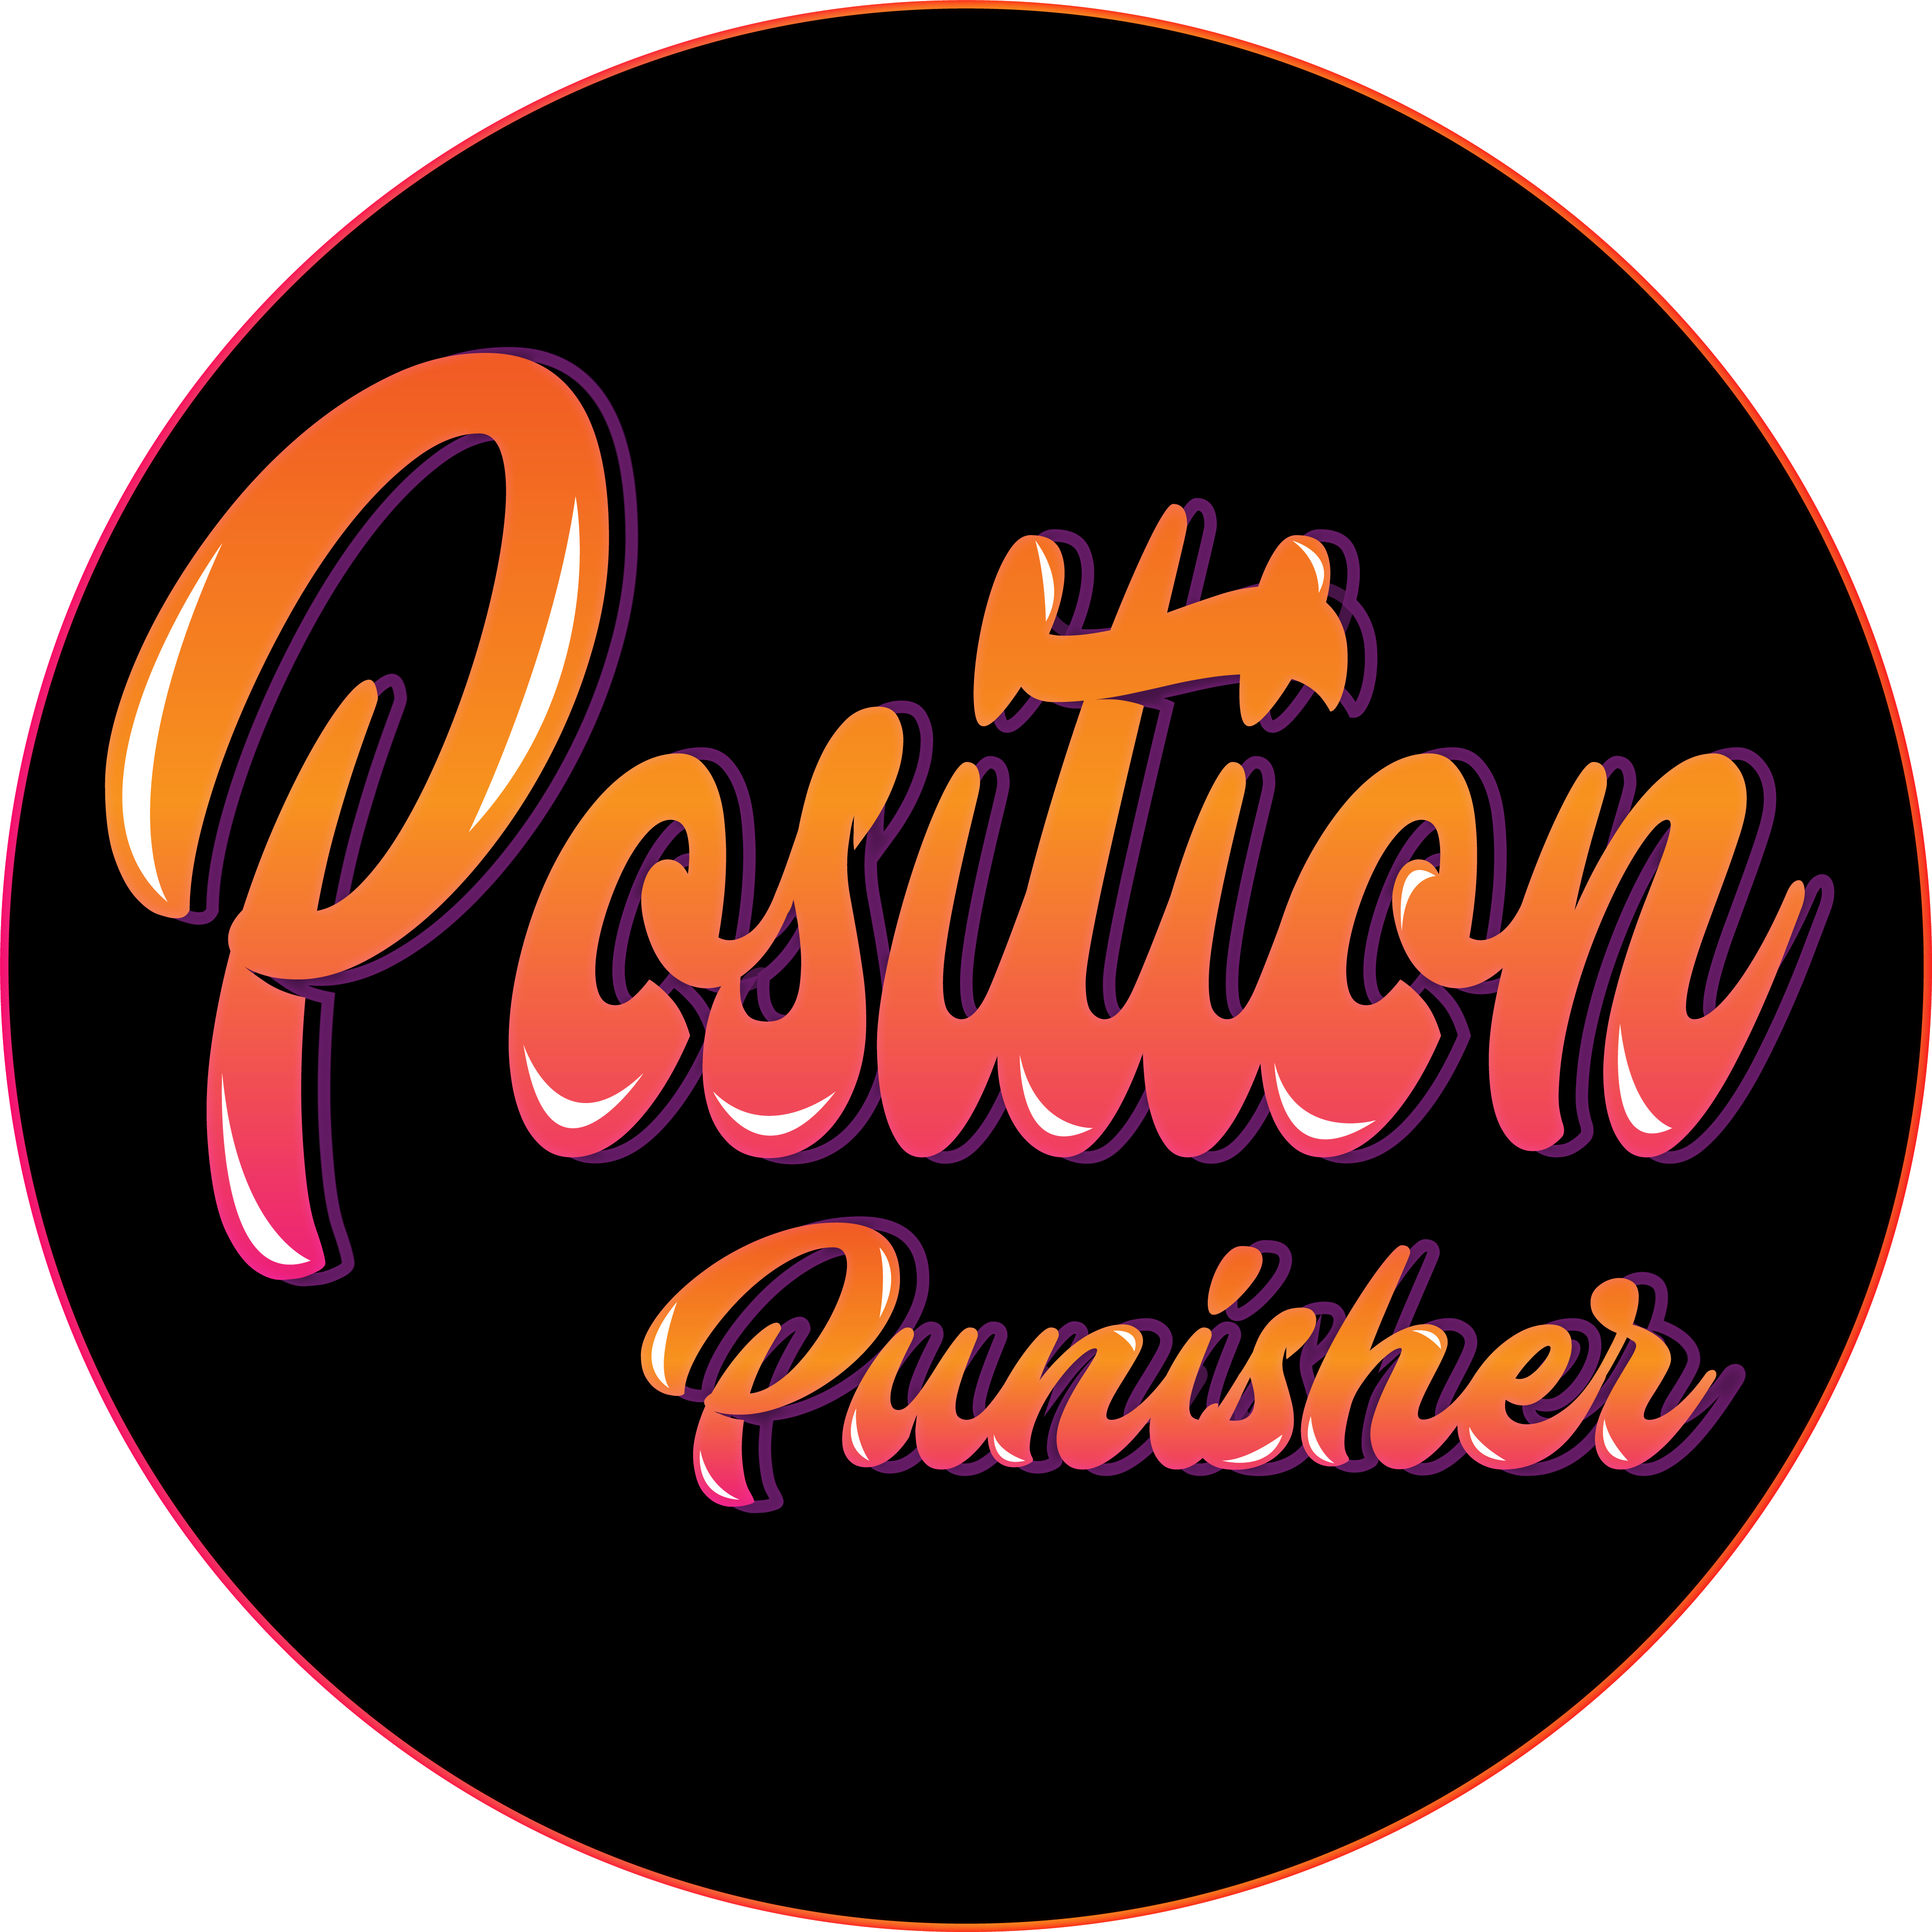 New SEO Company, Position Punisher LLC, Wants to Improve Search Engine Ranking and Introduce Emerging Brands to the Masses